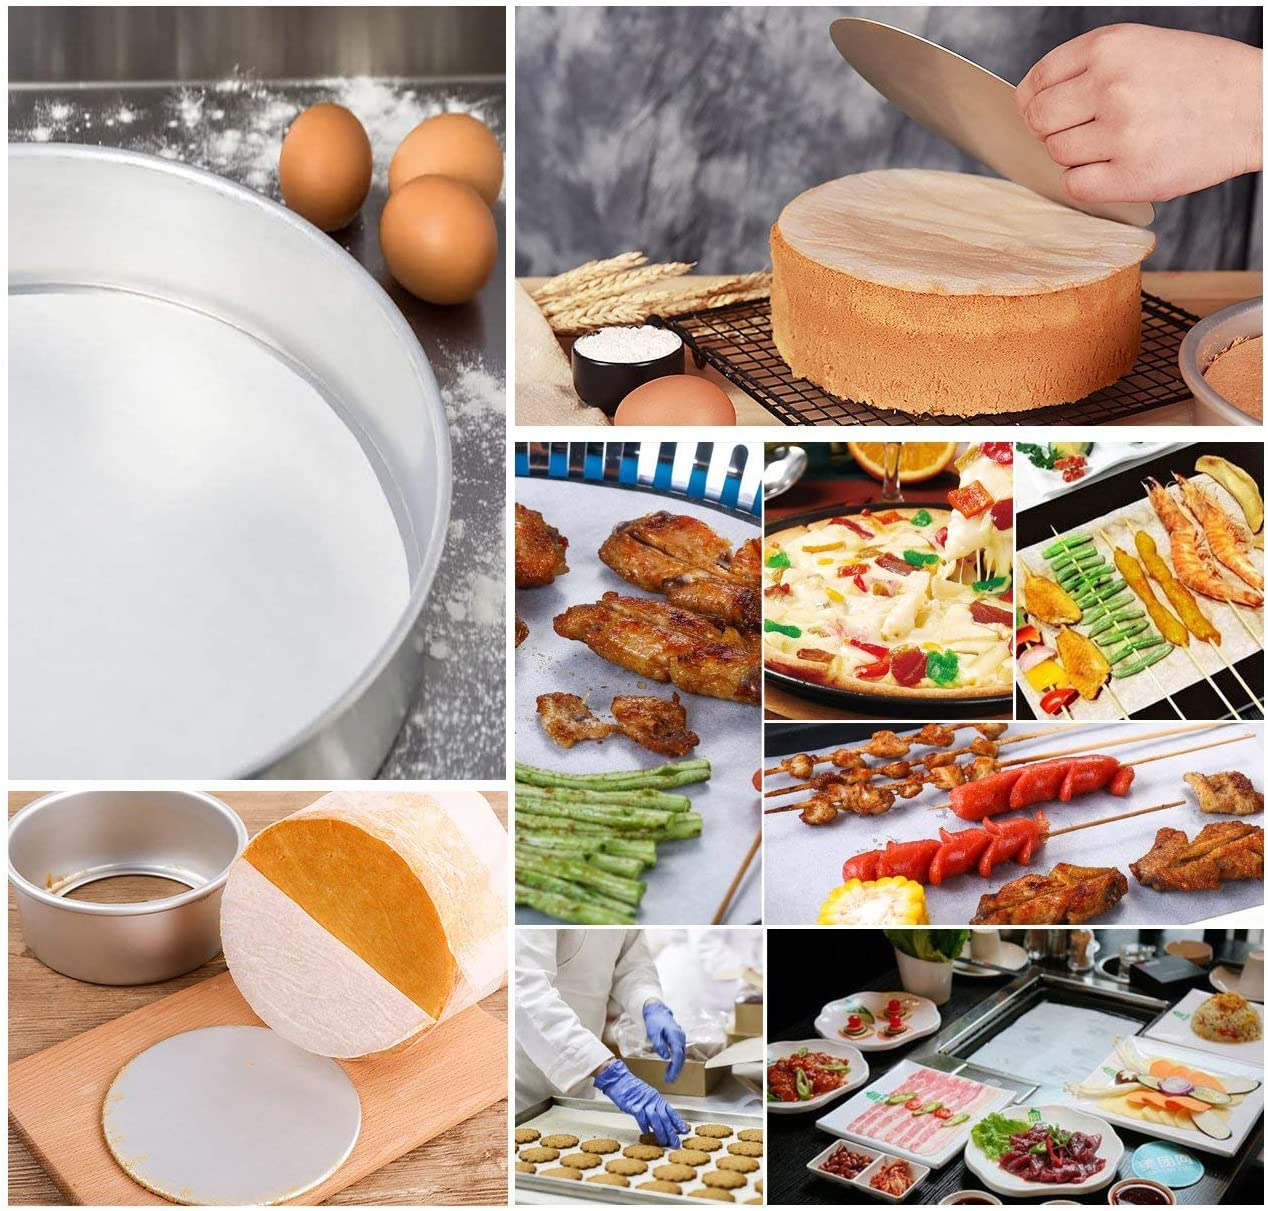 7 inch Parchment Paper Baking Circles Air Fryer Cooking 200 Eco-Friendly Pack Baking Paper Liners for Round Cake Pans Circle Cheesecake